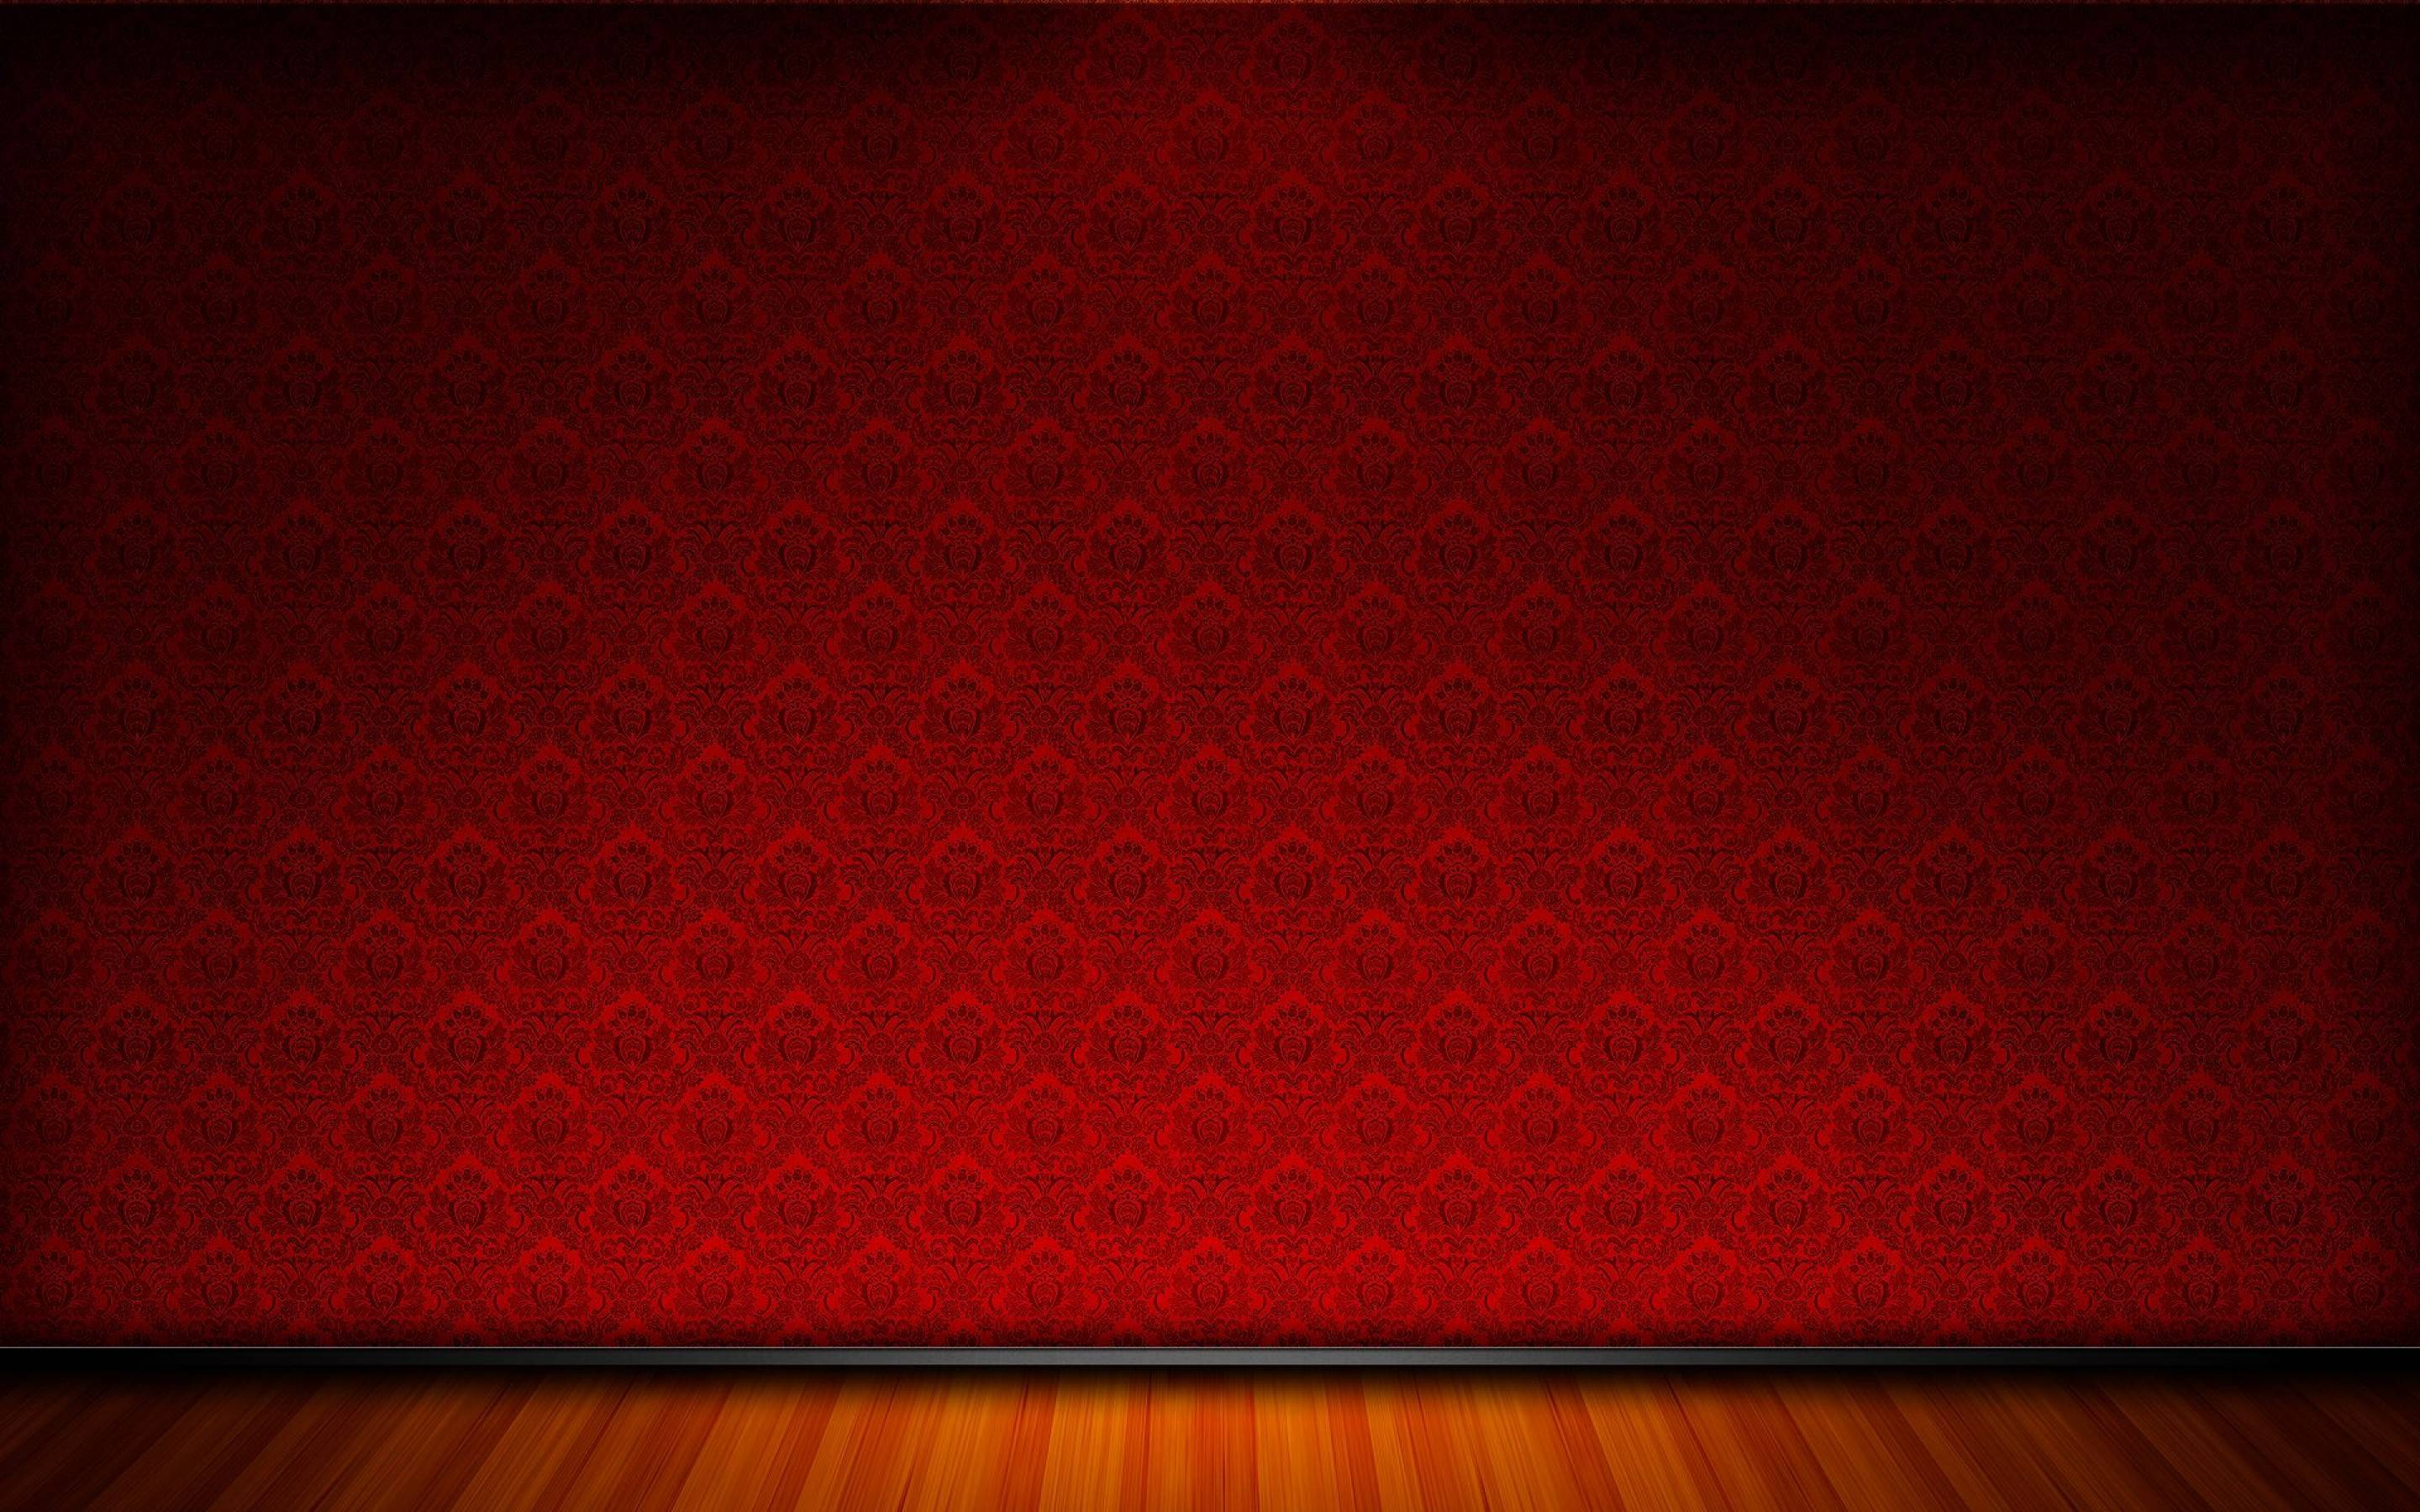 maroon color backgrounds wallpaper cave maroon color backgrounds wallpaper cave